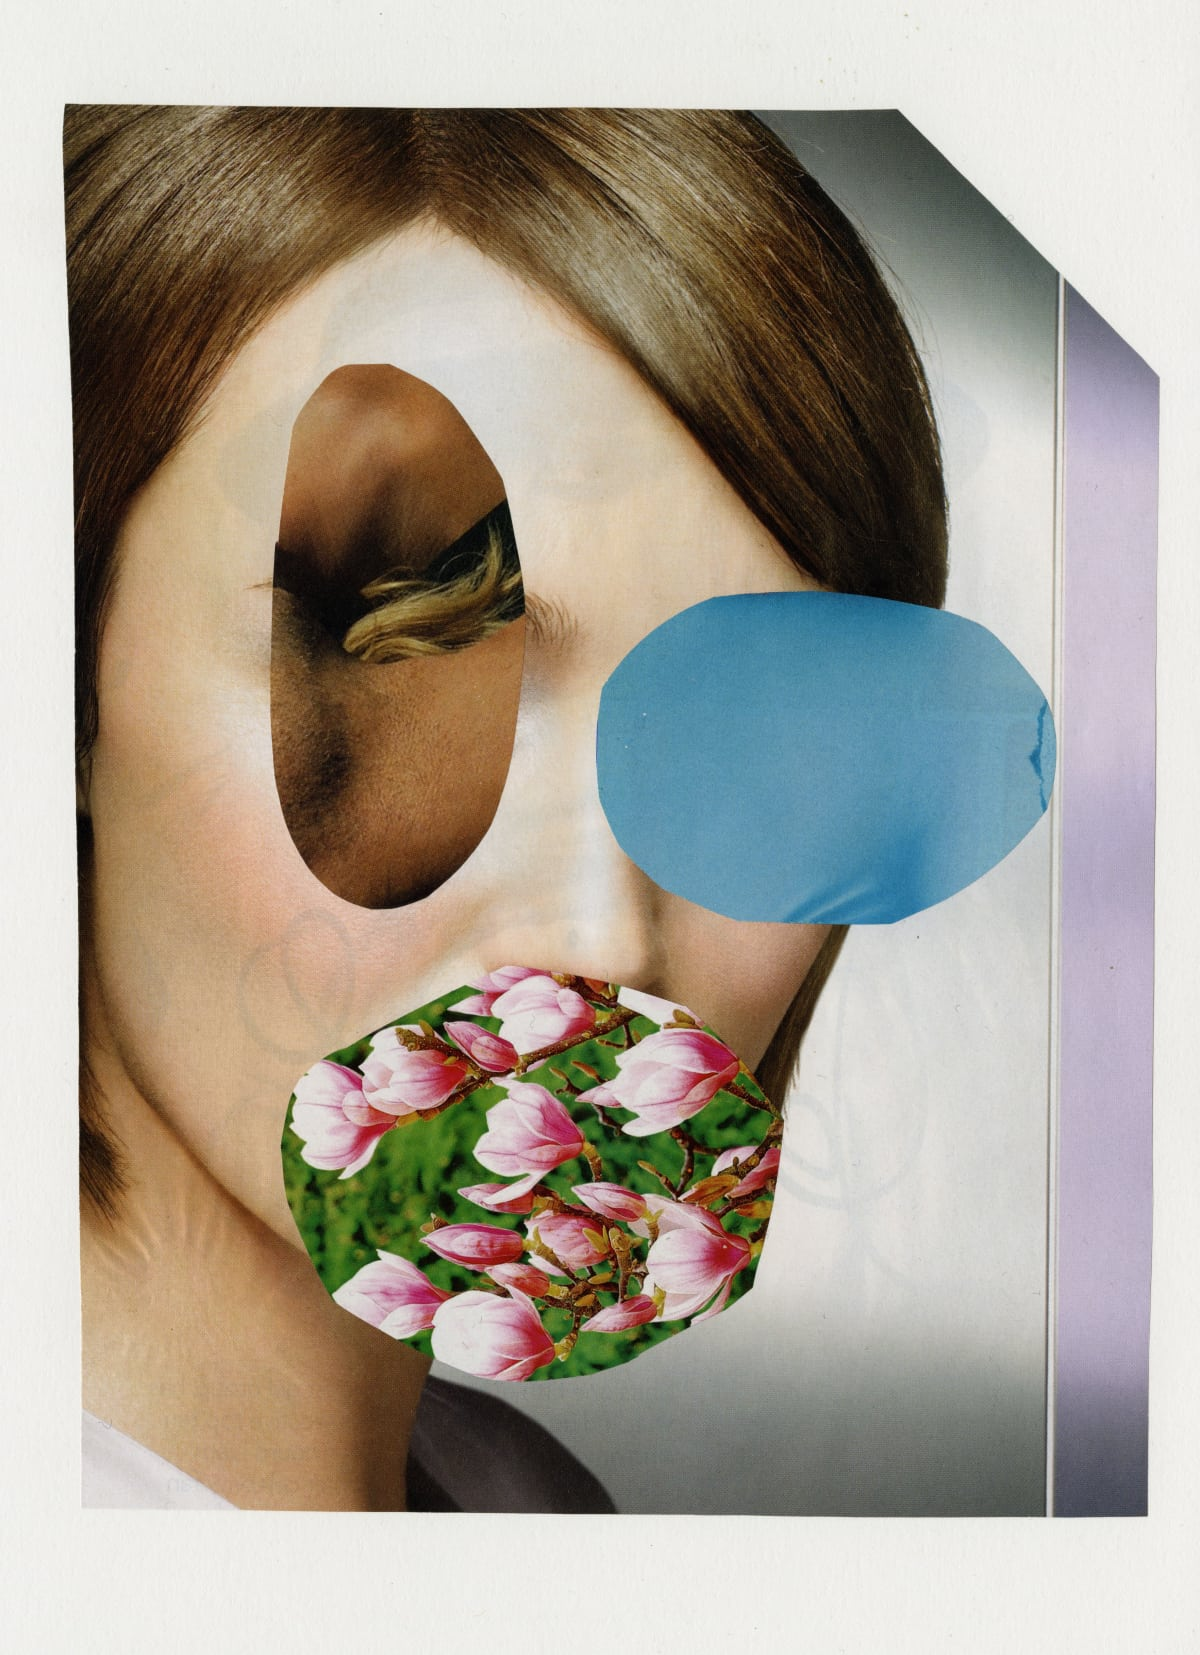 Eric Bainbridge on Collage